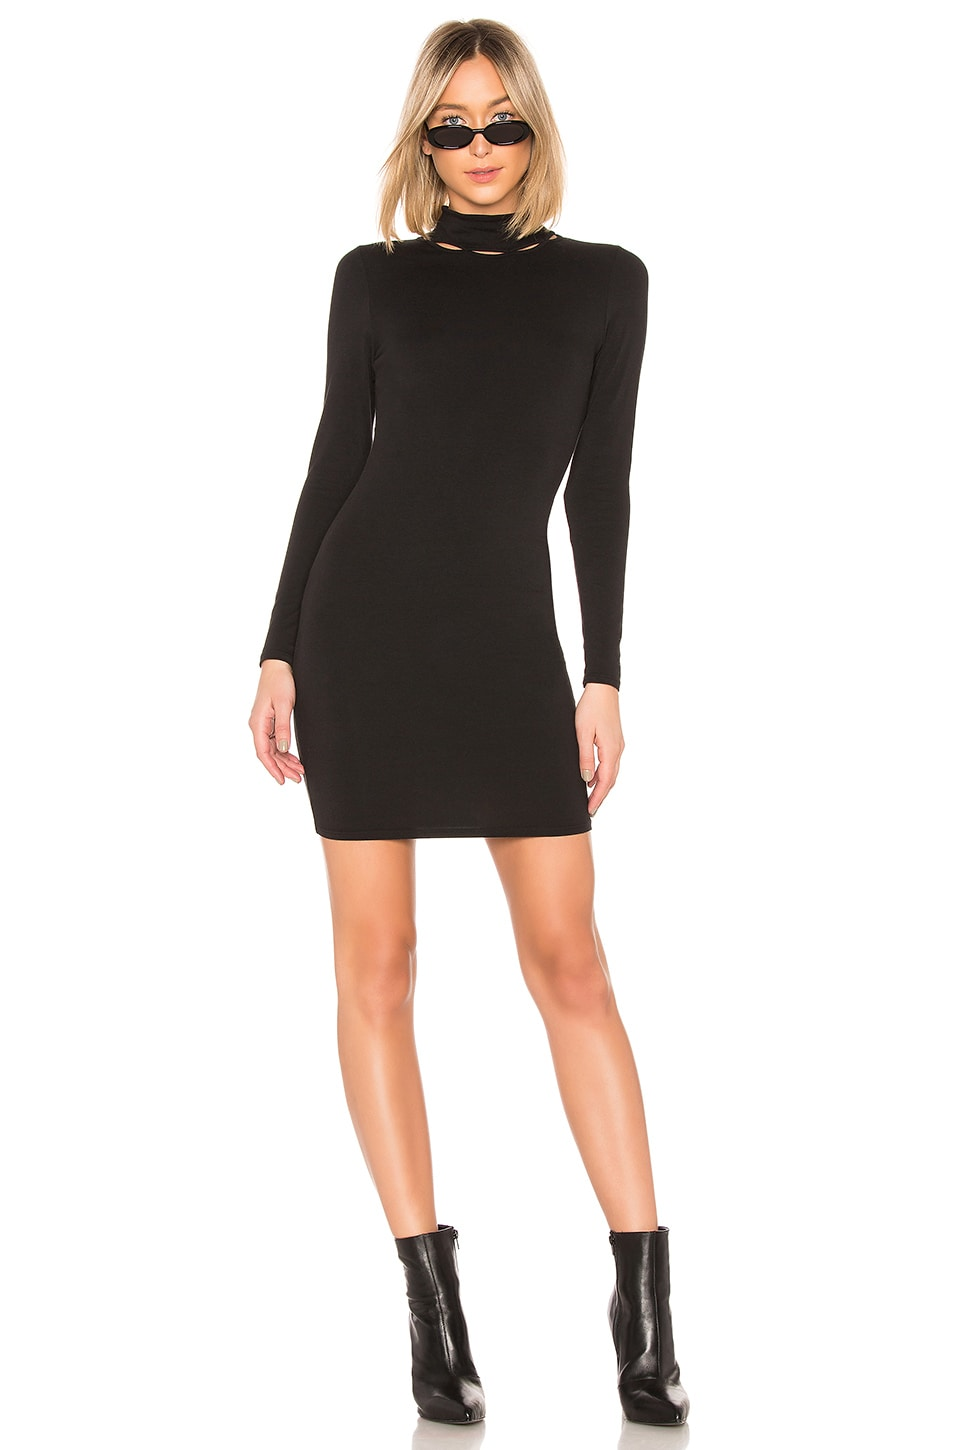 LA Made Juvel Dress in Black